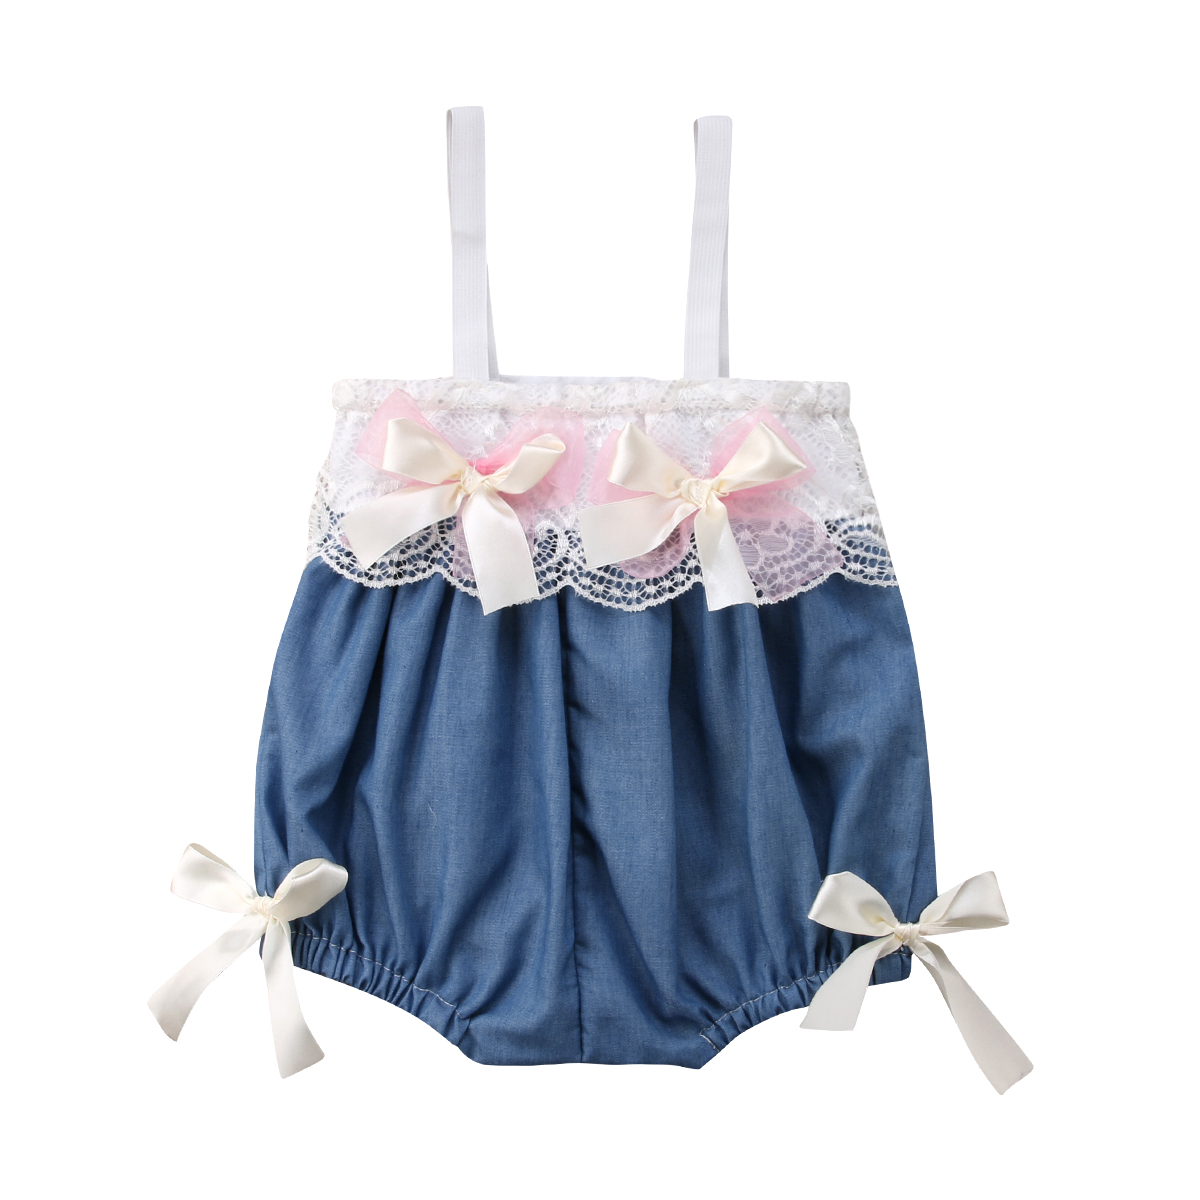 Princess Newborn Infant Kids Baby Girl Lace Floral Sleevelss Romper Summer Clothes Jumpsuit